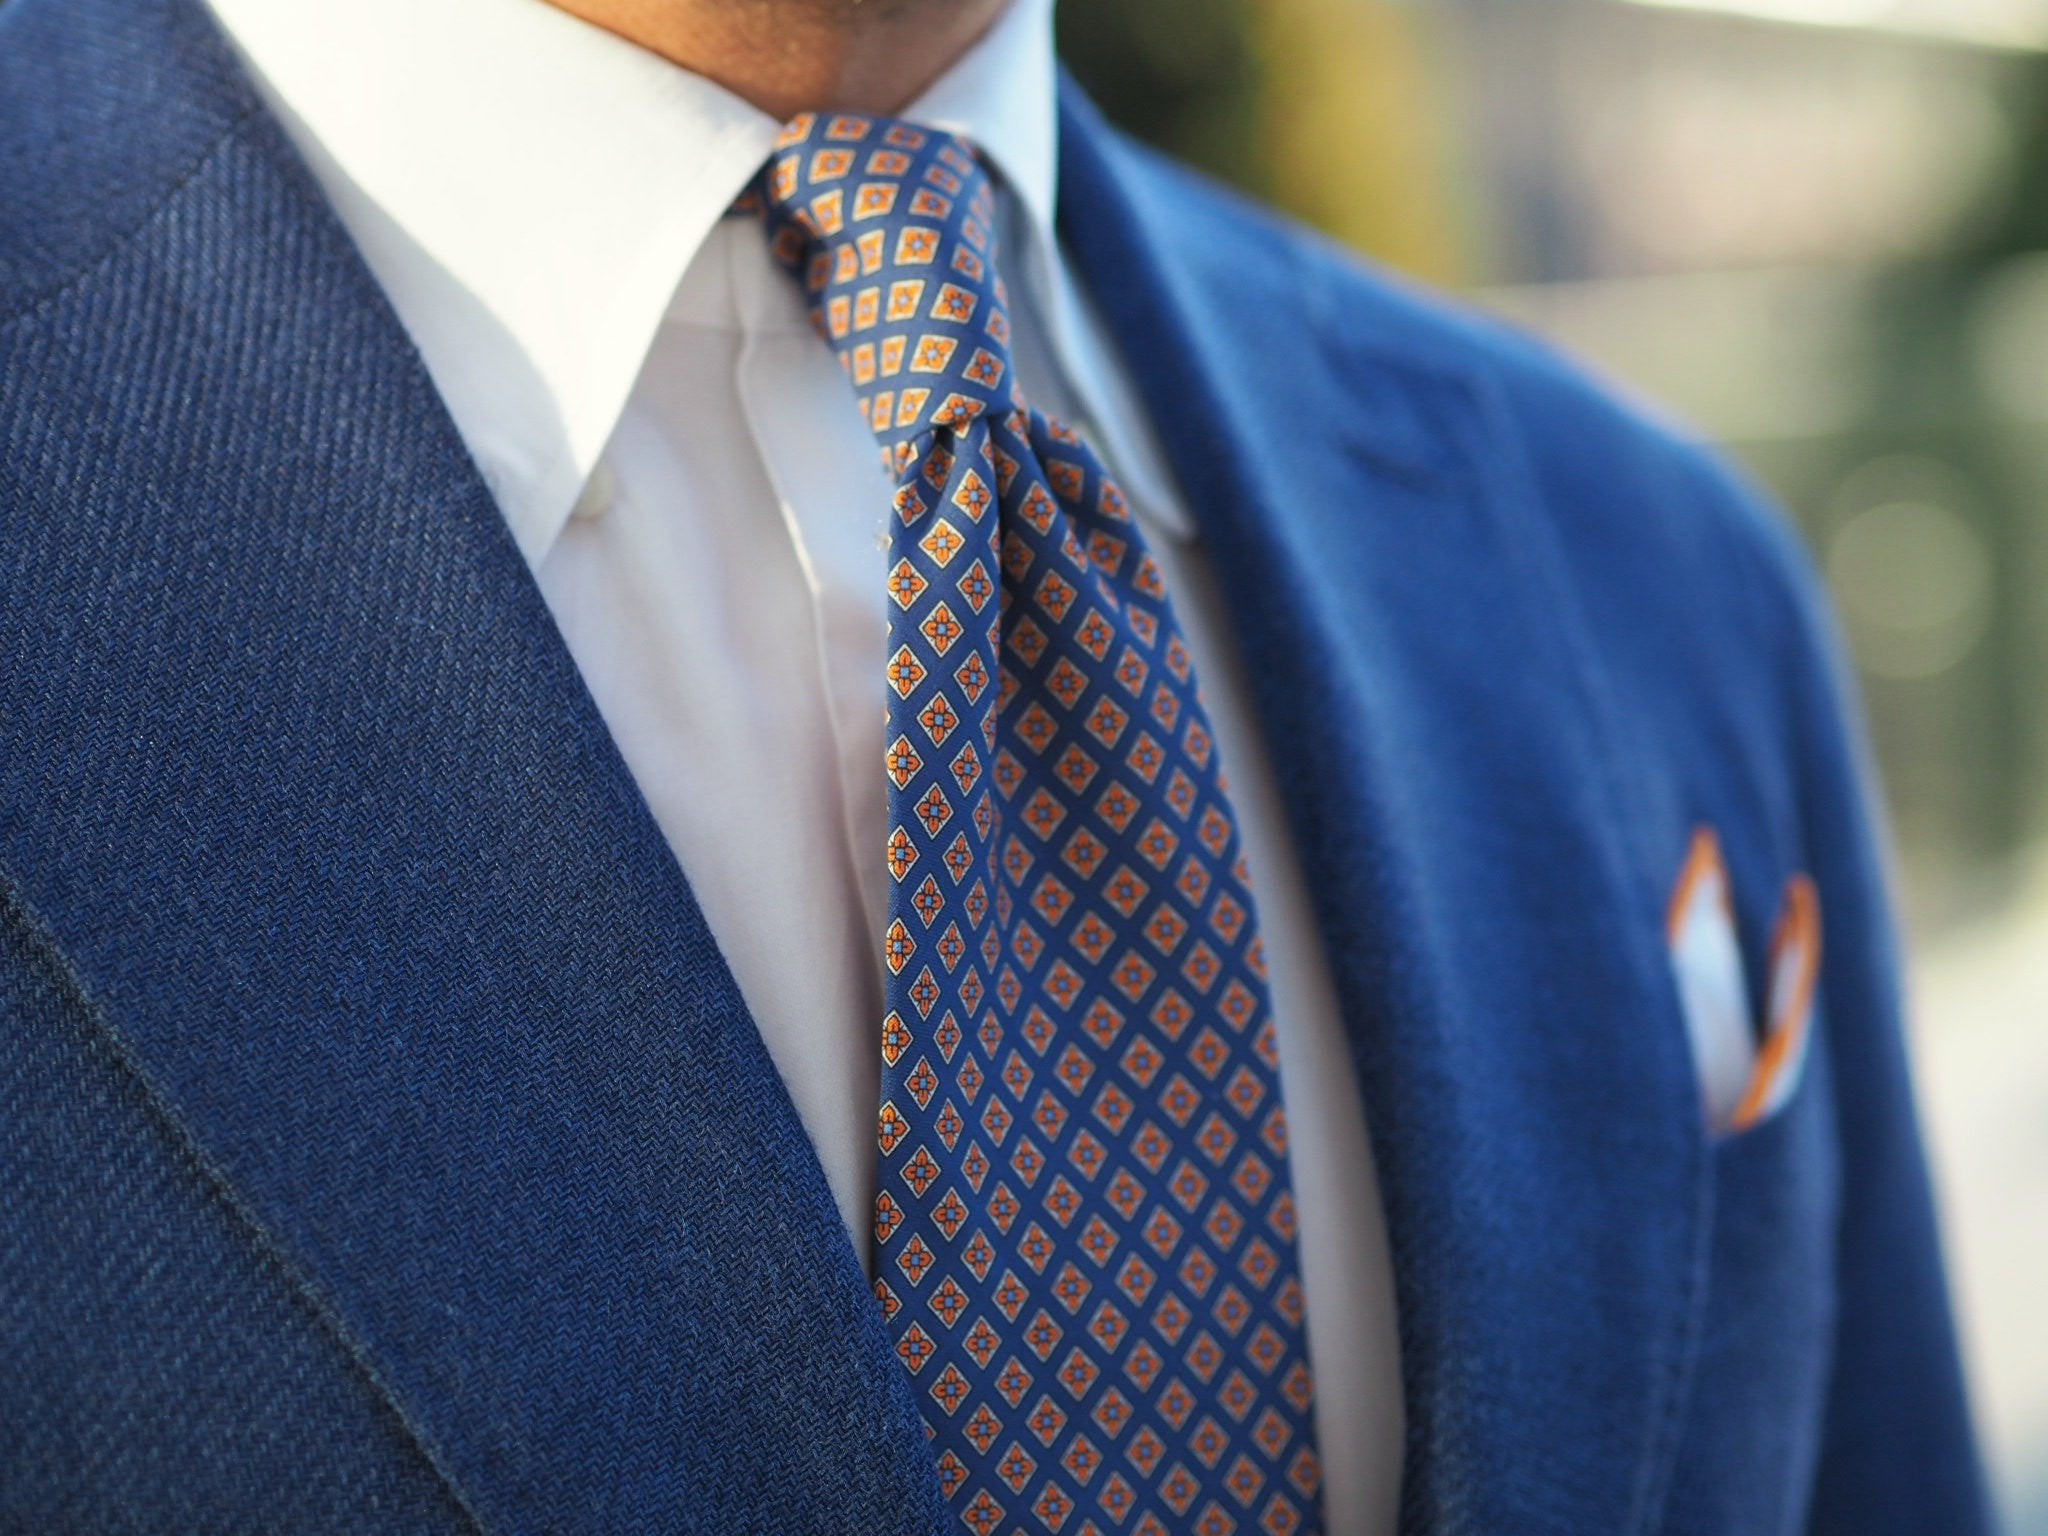 Blue suit jacket as a sport coat - tie and collar details